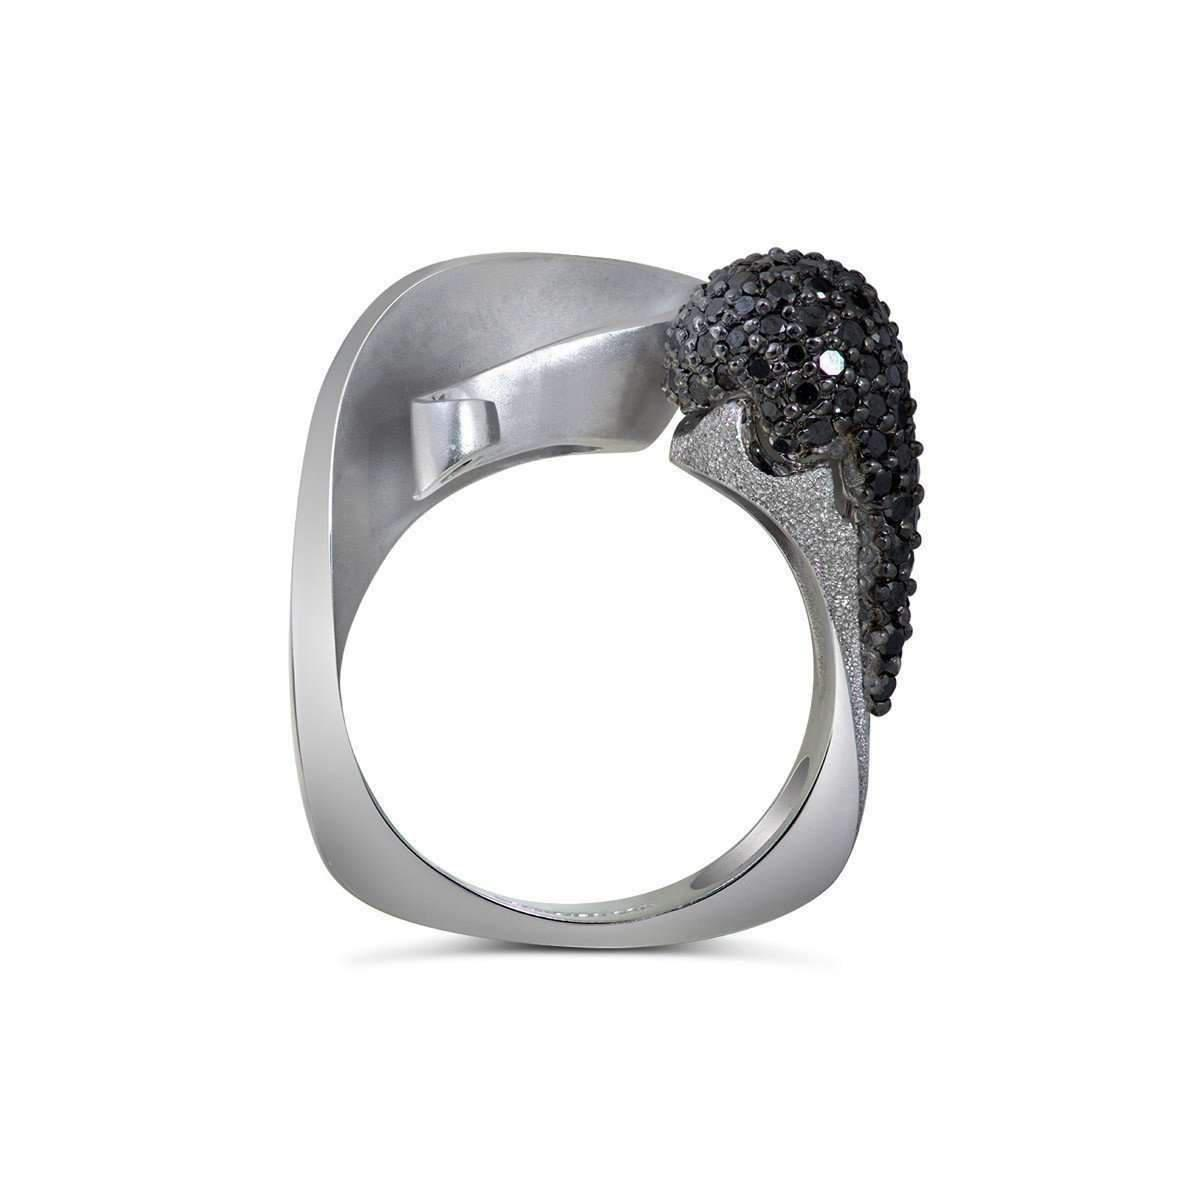 Alex Soldier 18kt White Gold & Black Diamond Calla Ring in Metallic